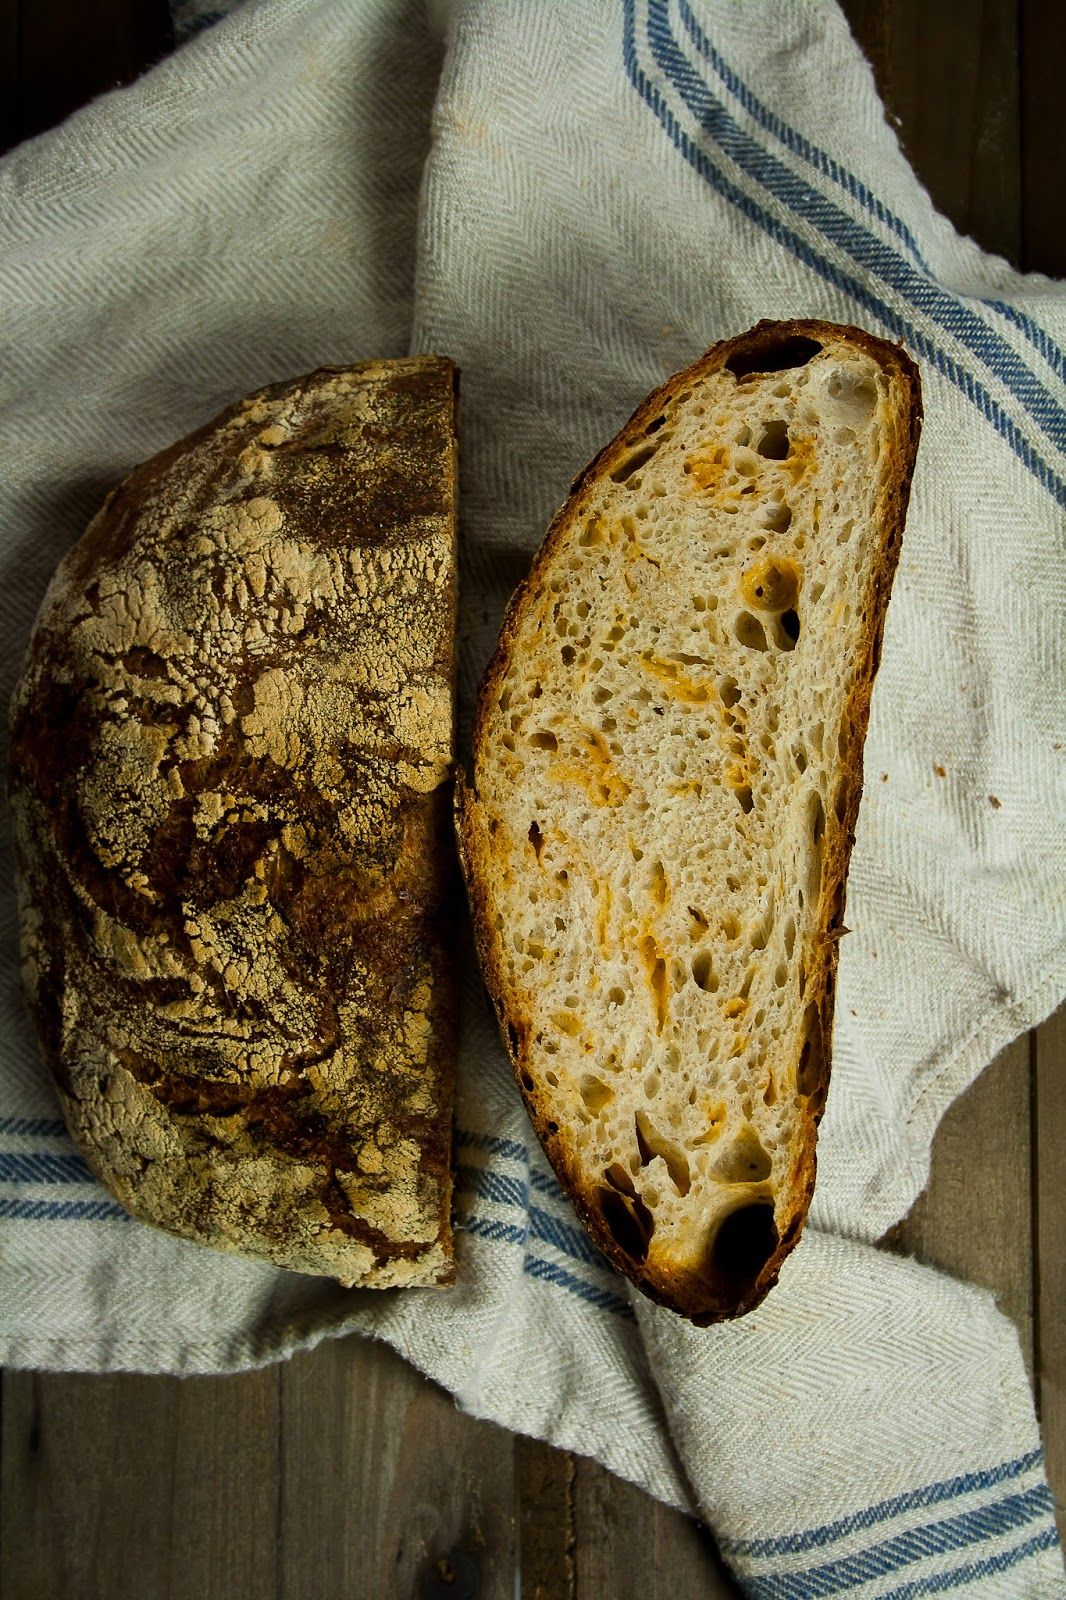 I M Going To Admit That I M Getting A Little Tired Of Eating Toast For Every Meal I Mean Wow It S Great Toast It Really Tru Rye Bread Bread Vanilla Recipes